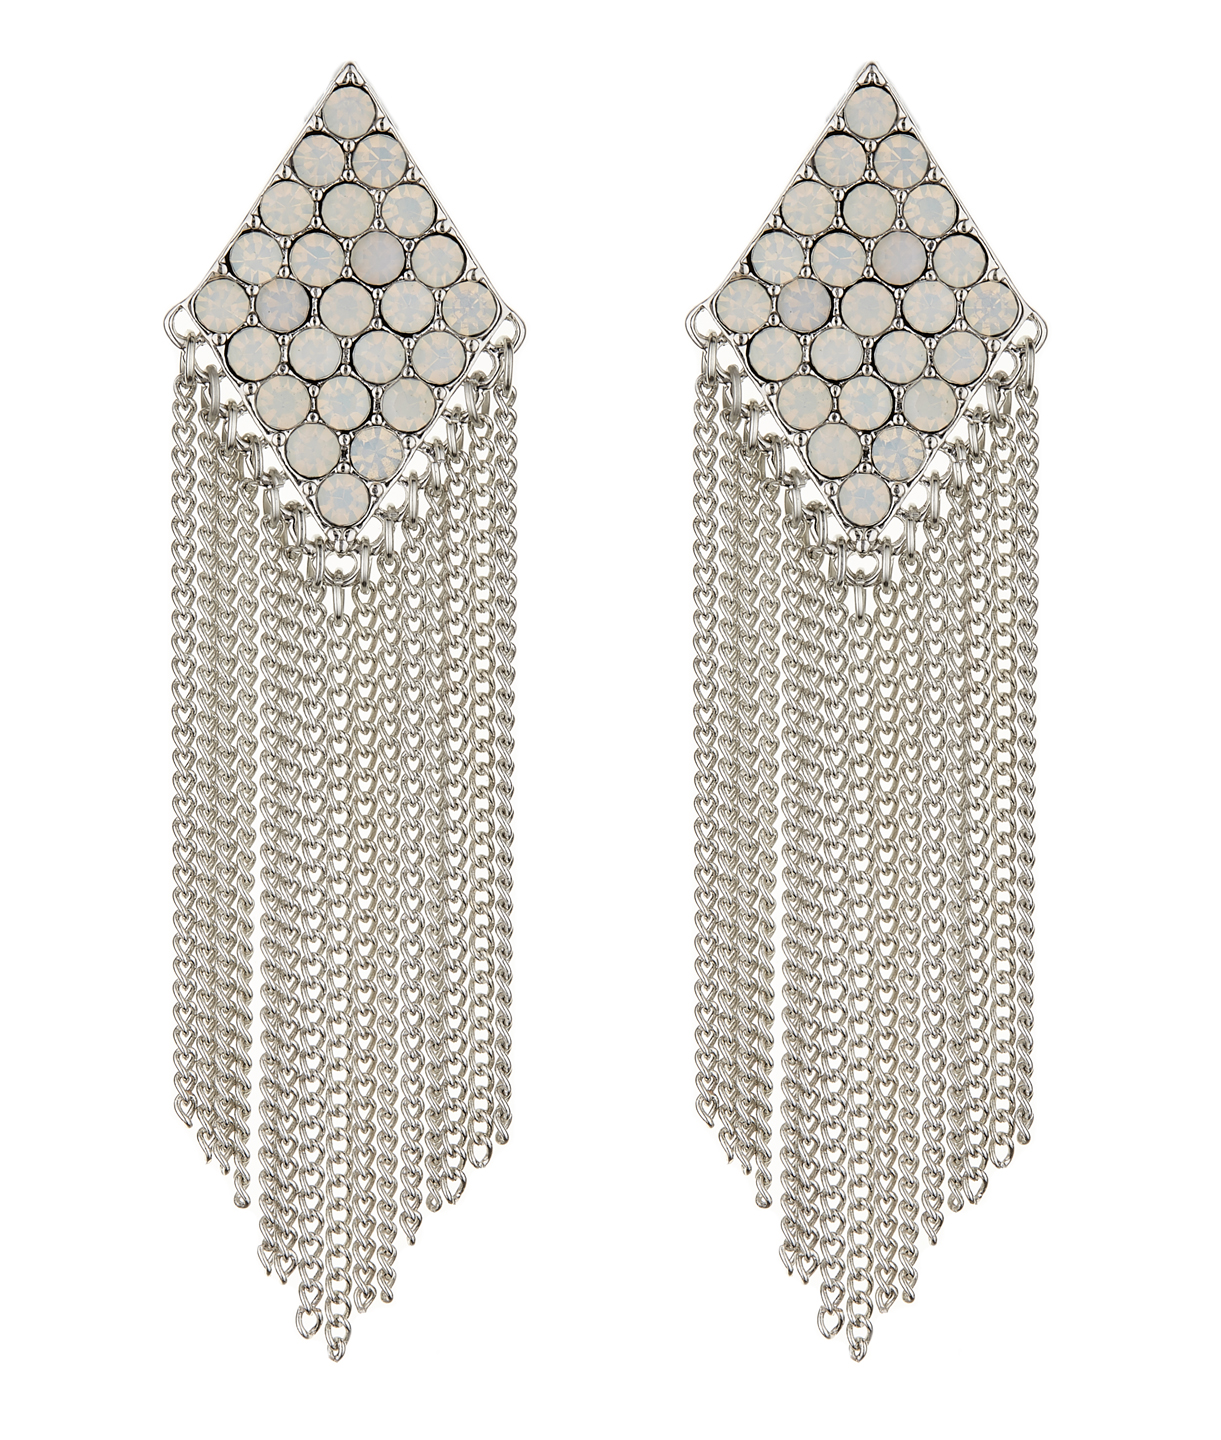 Clip On Earrings - Carys W - silver earring with crystals and a chain fringe